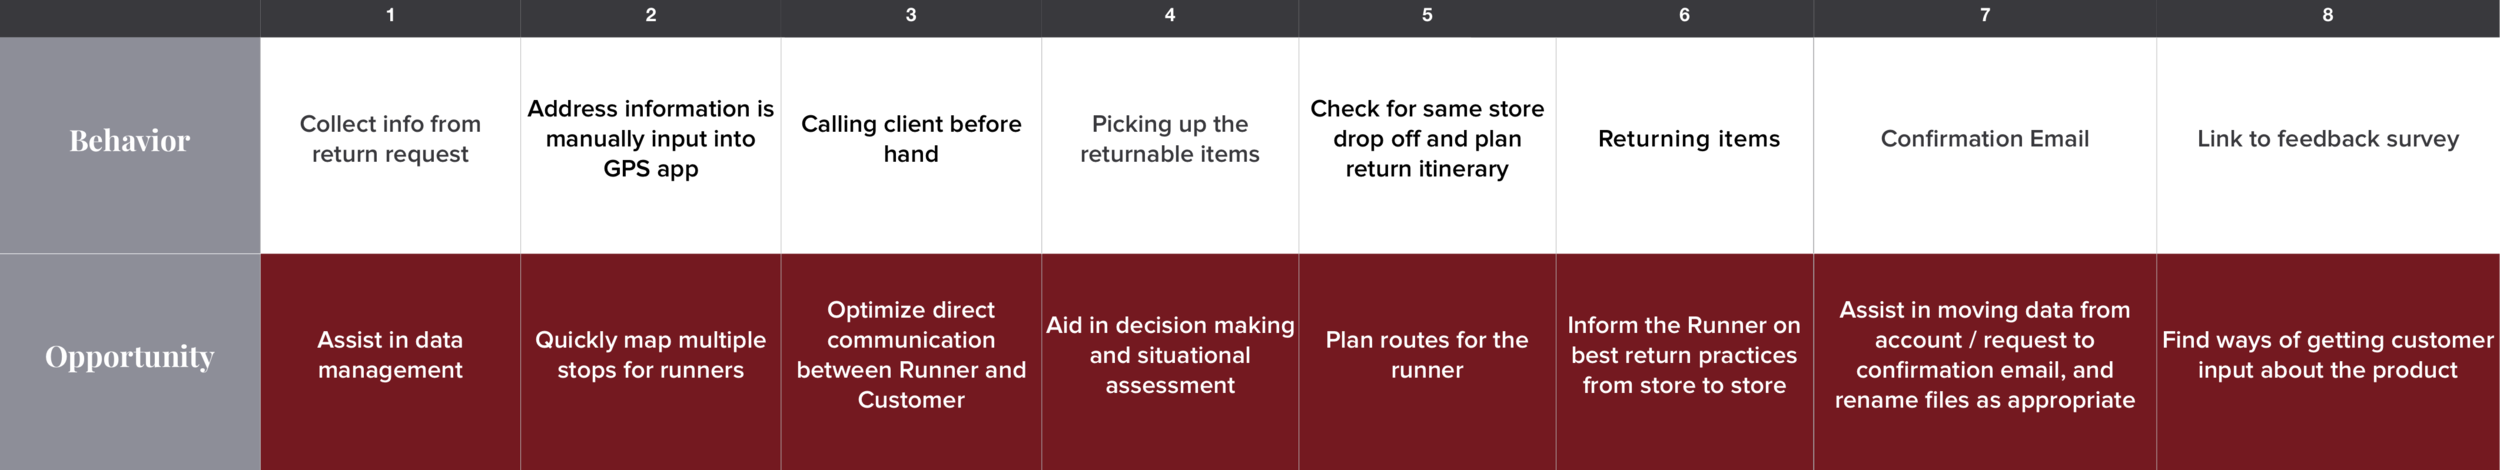 By exploring the current process, we found opportunities to improve the runner's experience and integrate data collection to advance RR's process. We carried insight we learned through this process into the ideation phase of our process.